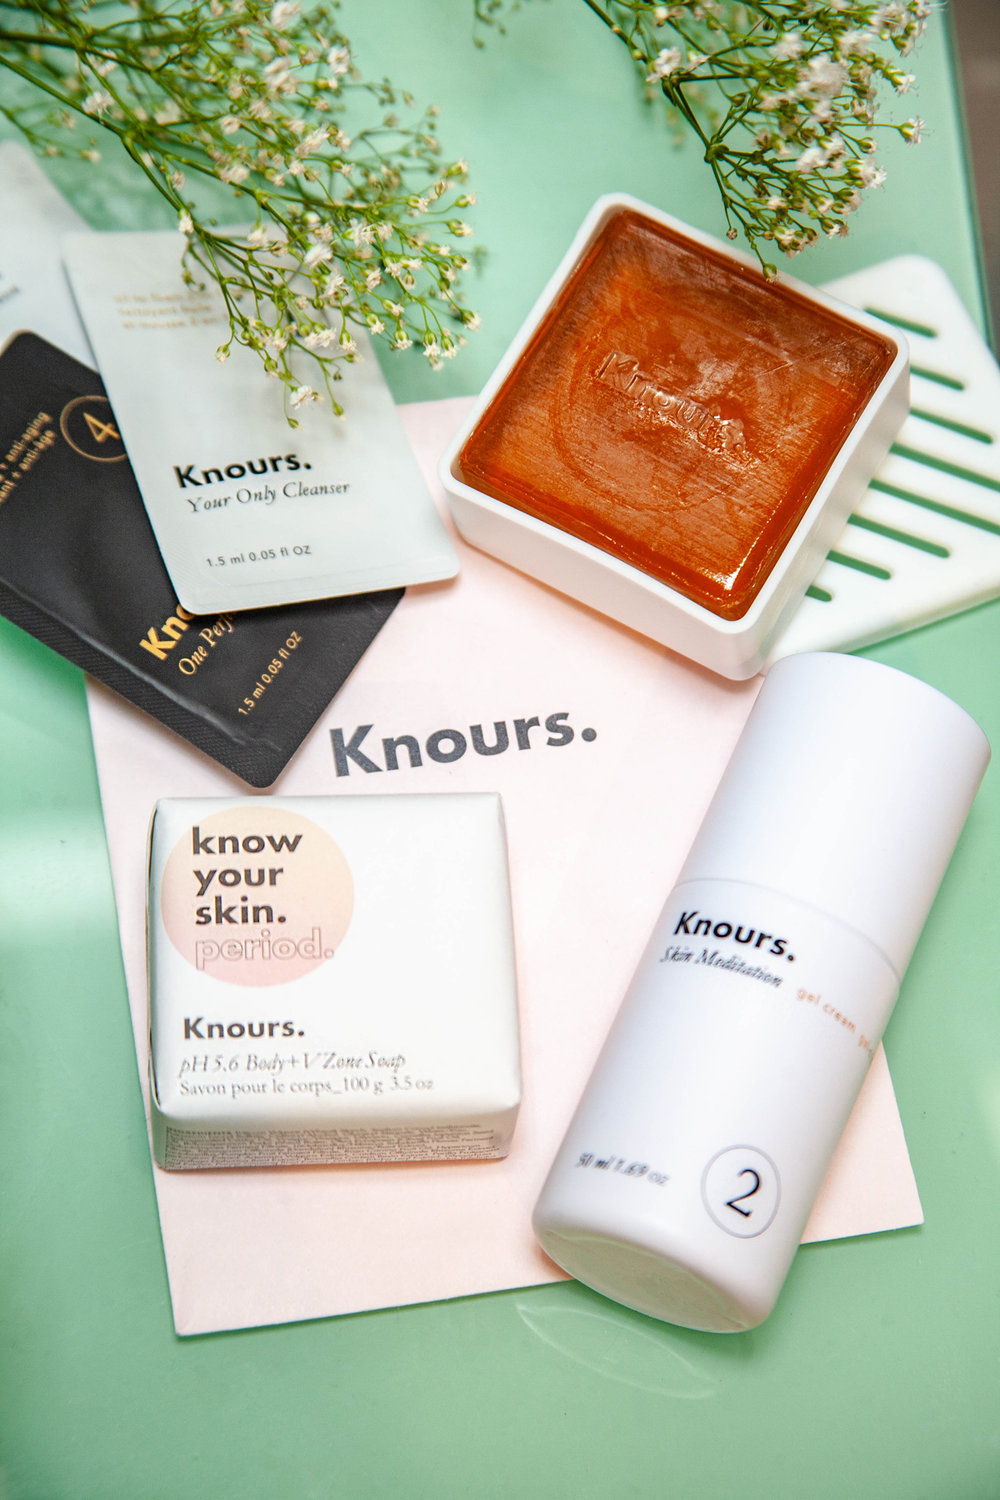 Knours skincare products